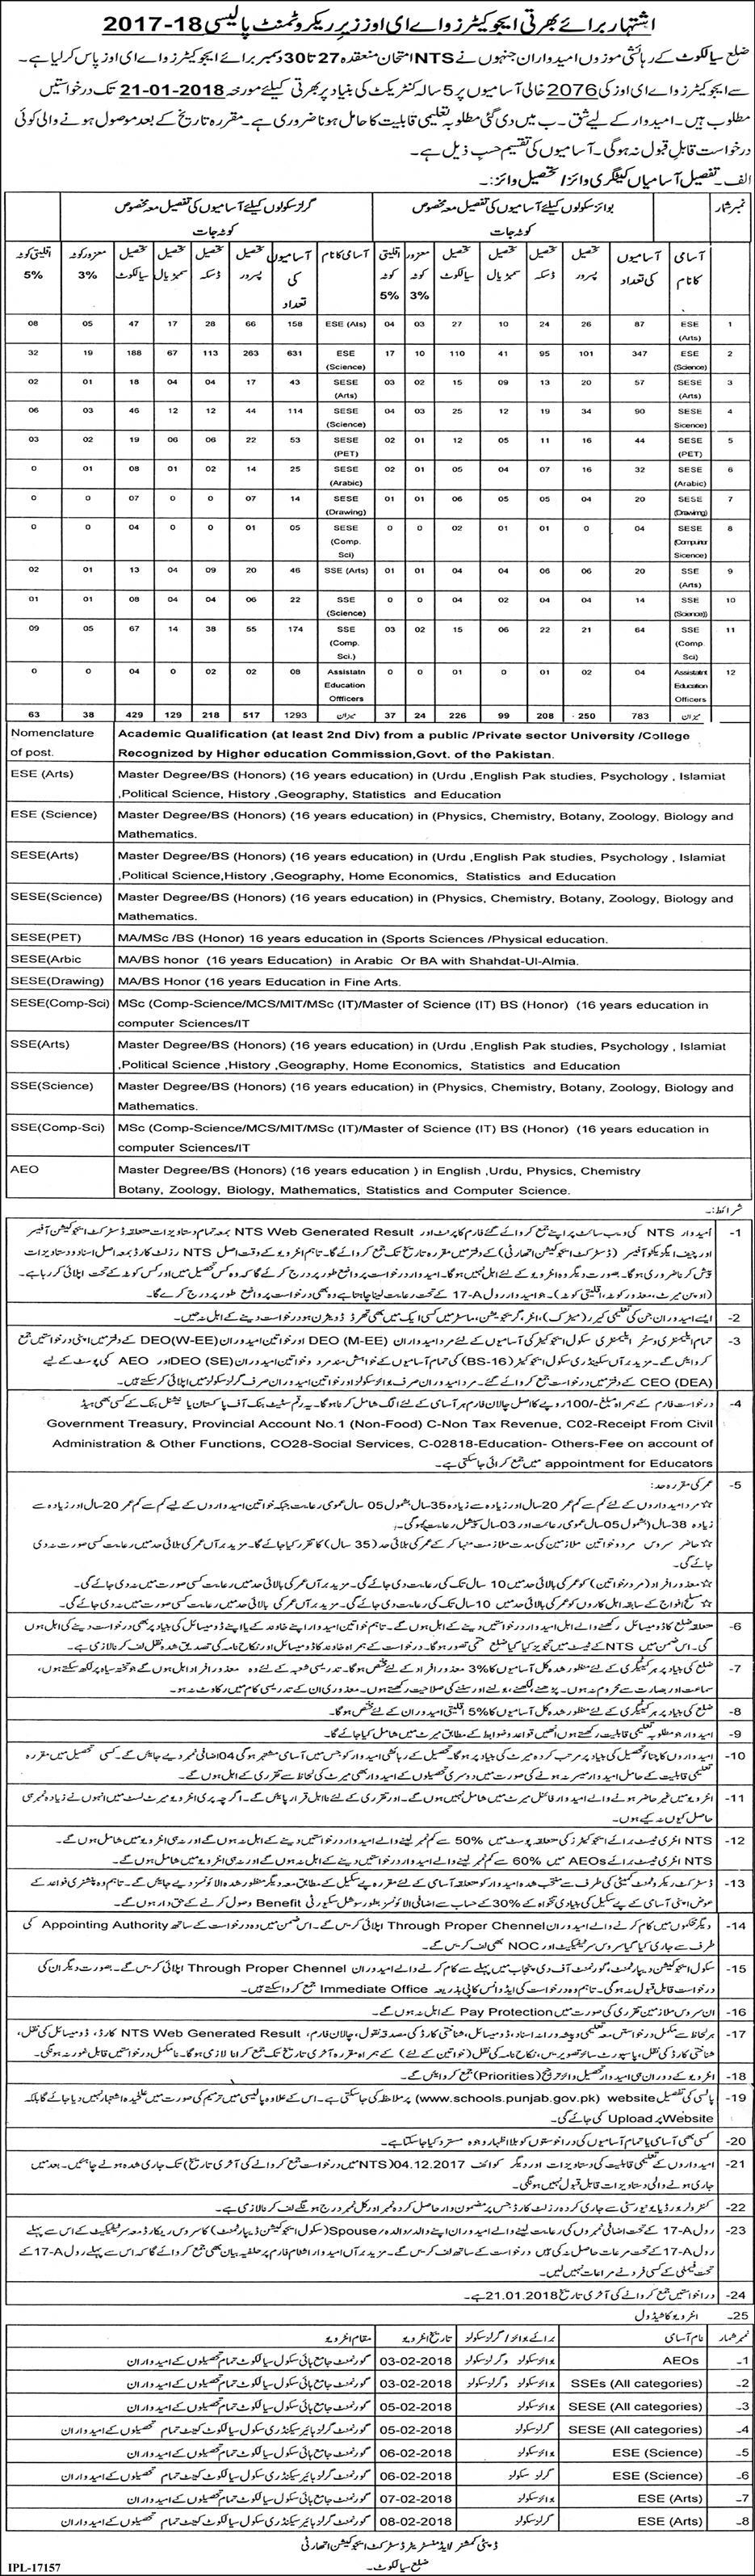 Sialkot District Education Authority, Educators and AEO's 2076 Jobs 26 December 2017 Express Newspaper